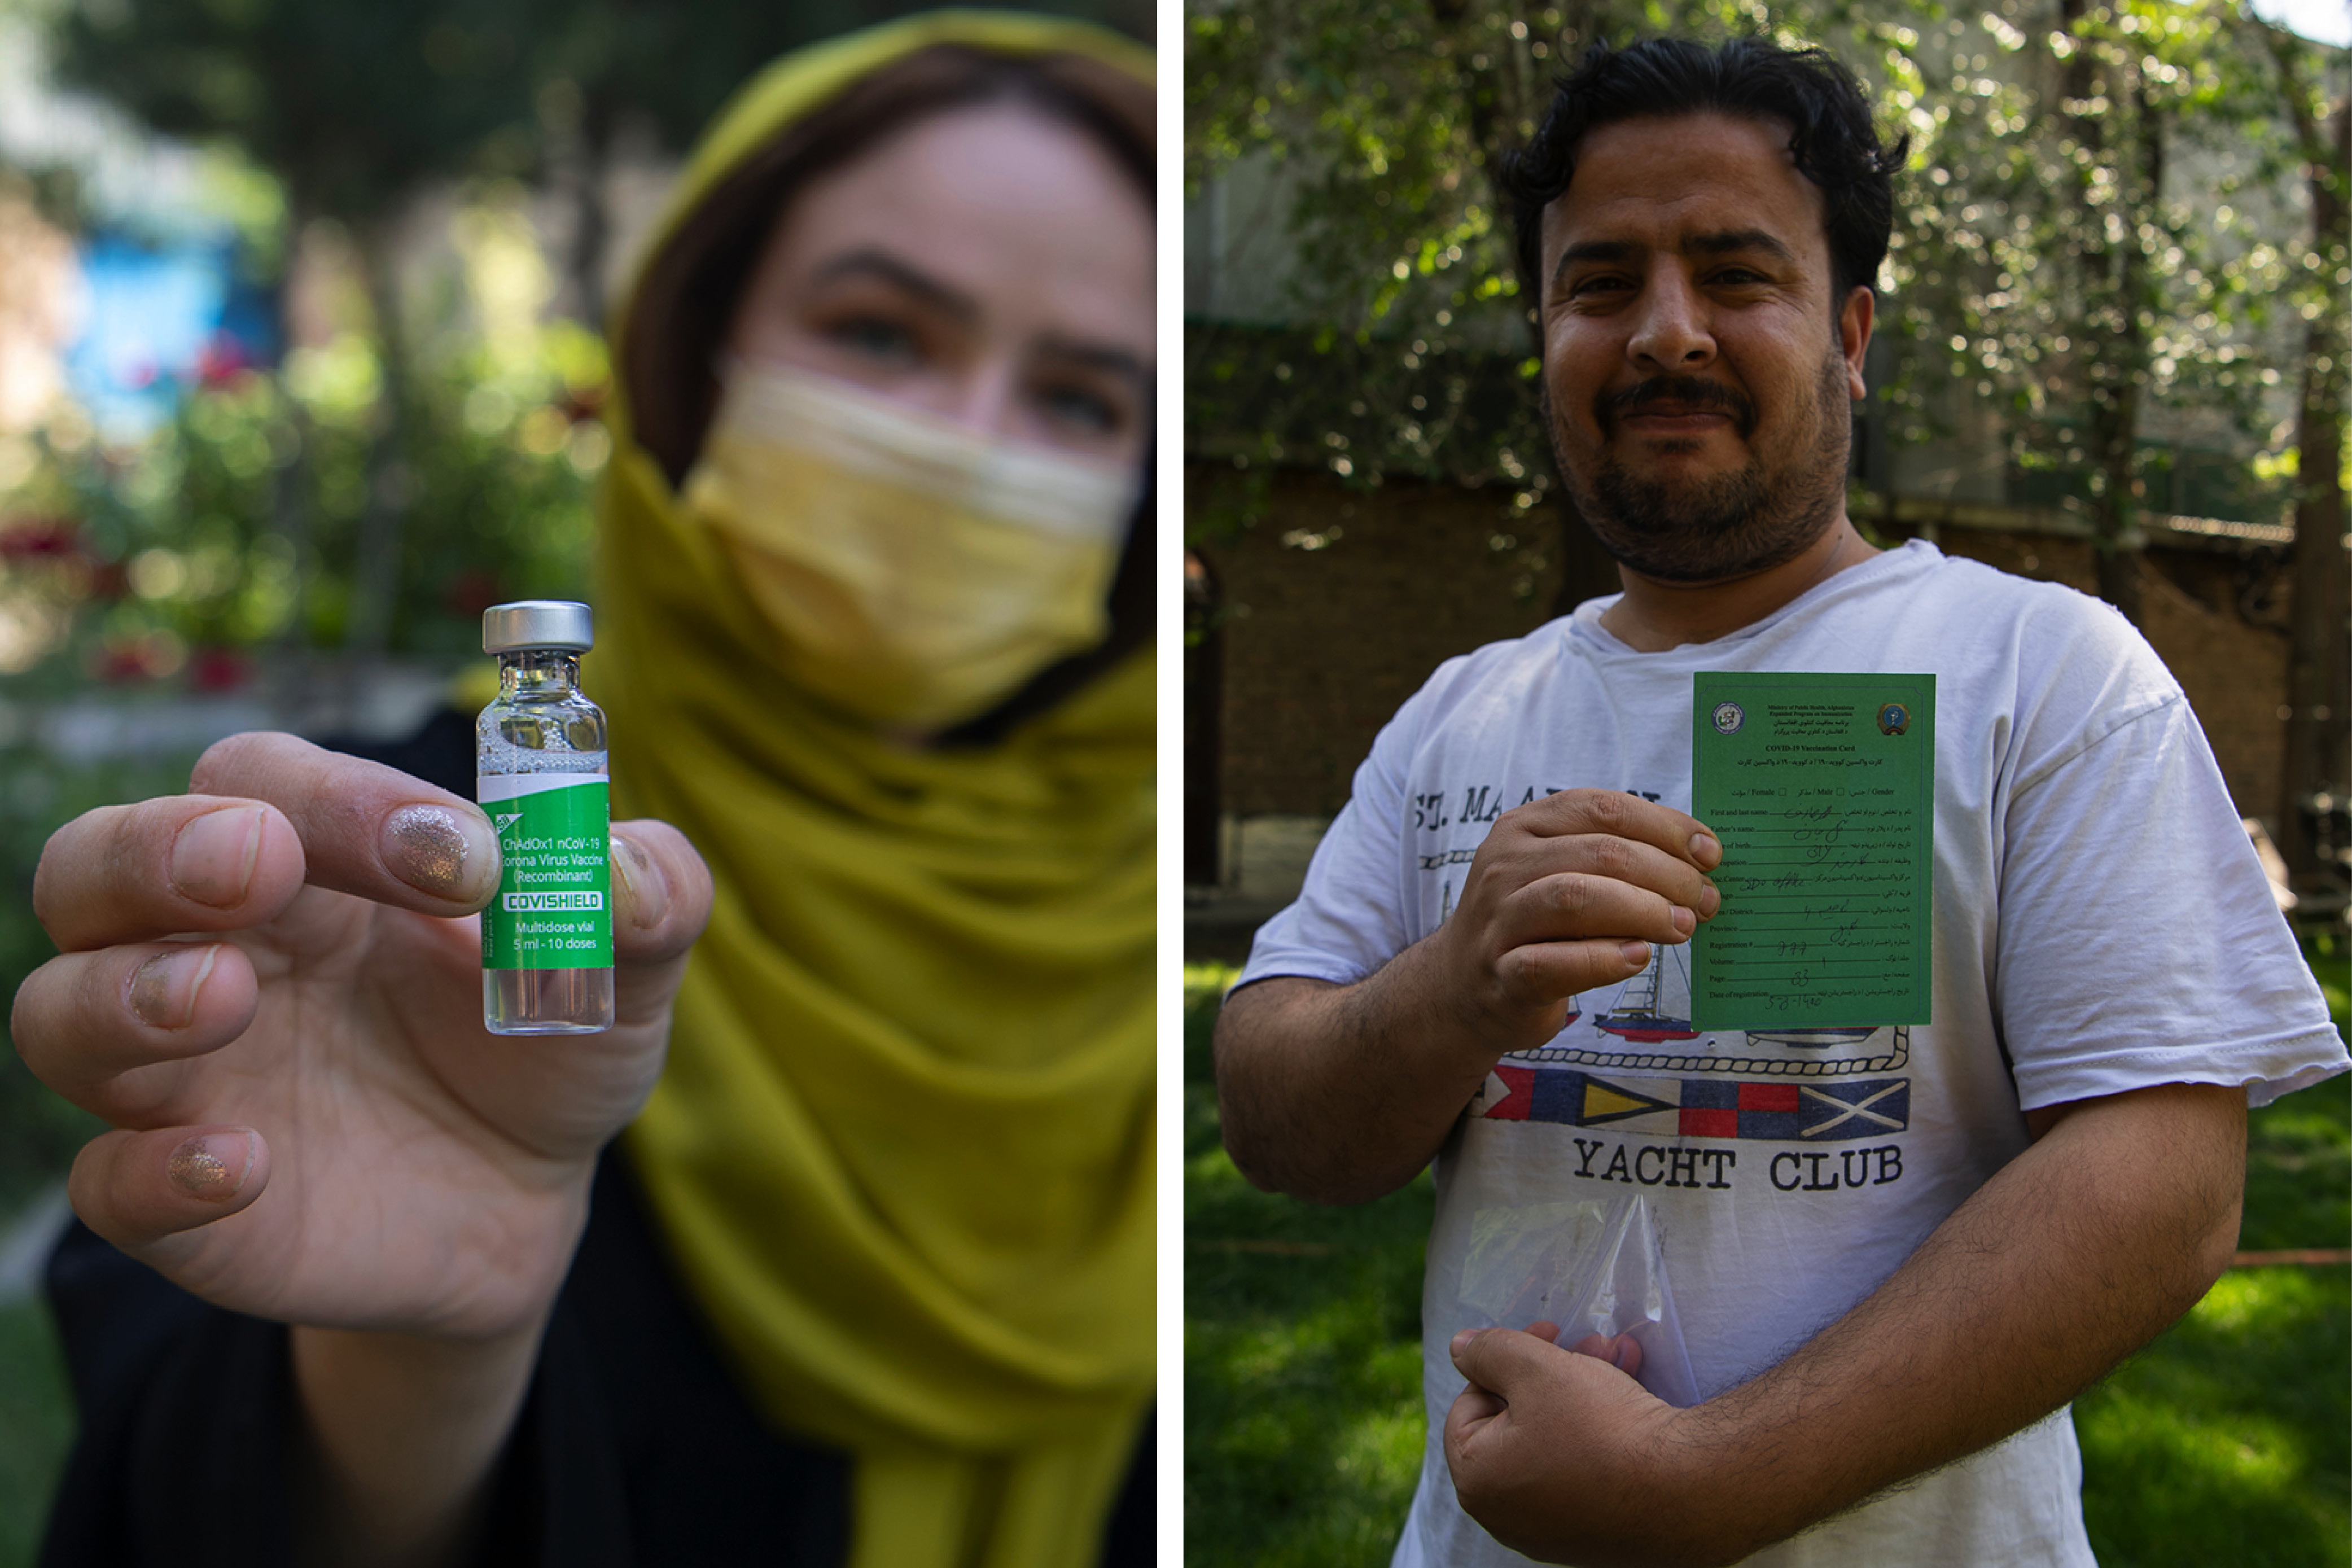 An employee of Sanayee Development Organisation shows a bottle of the vaccine (left) and a gardener shows his vaccine card after his vaccination in Kanul, Afghanistan, on May 25. Massoud Hossaini for Foreign Policy